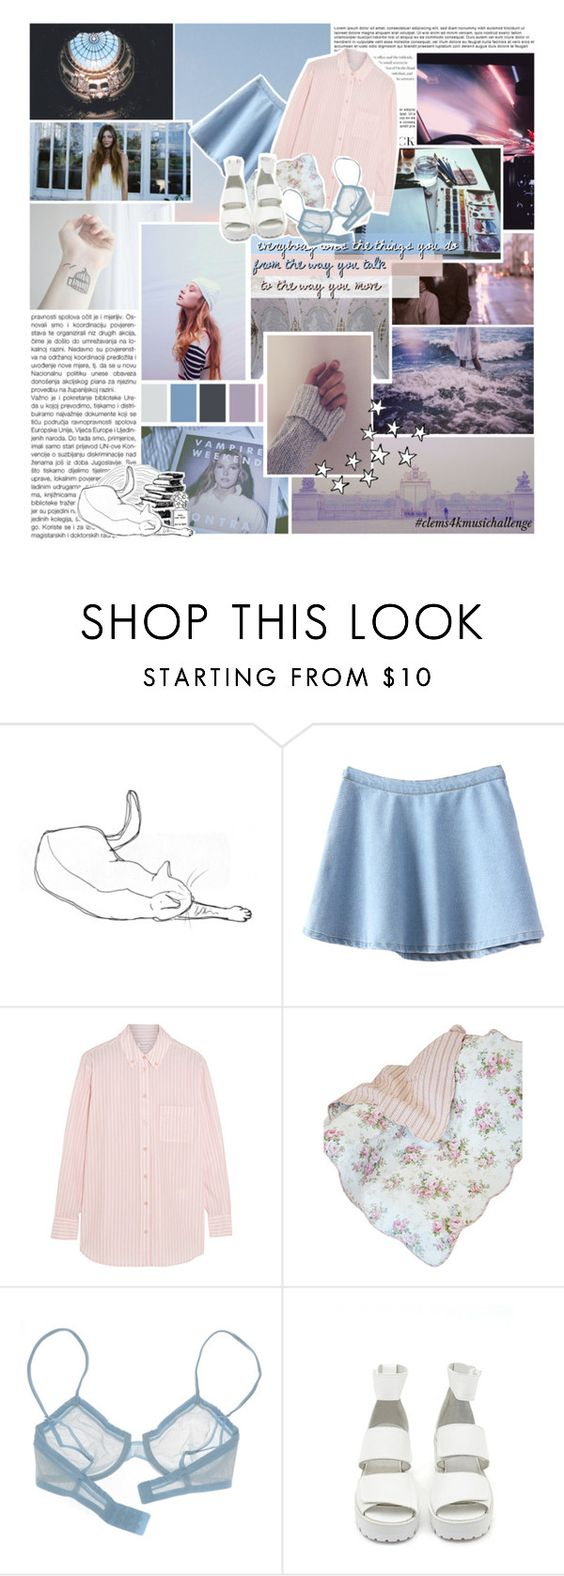 """""""Ina ( #clems4kmusichallenge - day 4 )"""" by end-of-the-day ❤ liked on Polyvore featuring Hansen, Seed Design, Equipment, La Perla and Nasty Gal"""